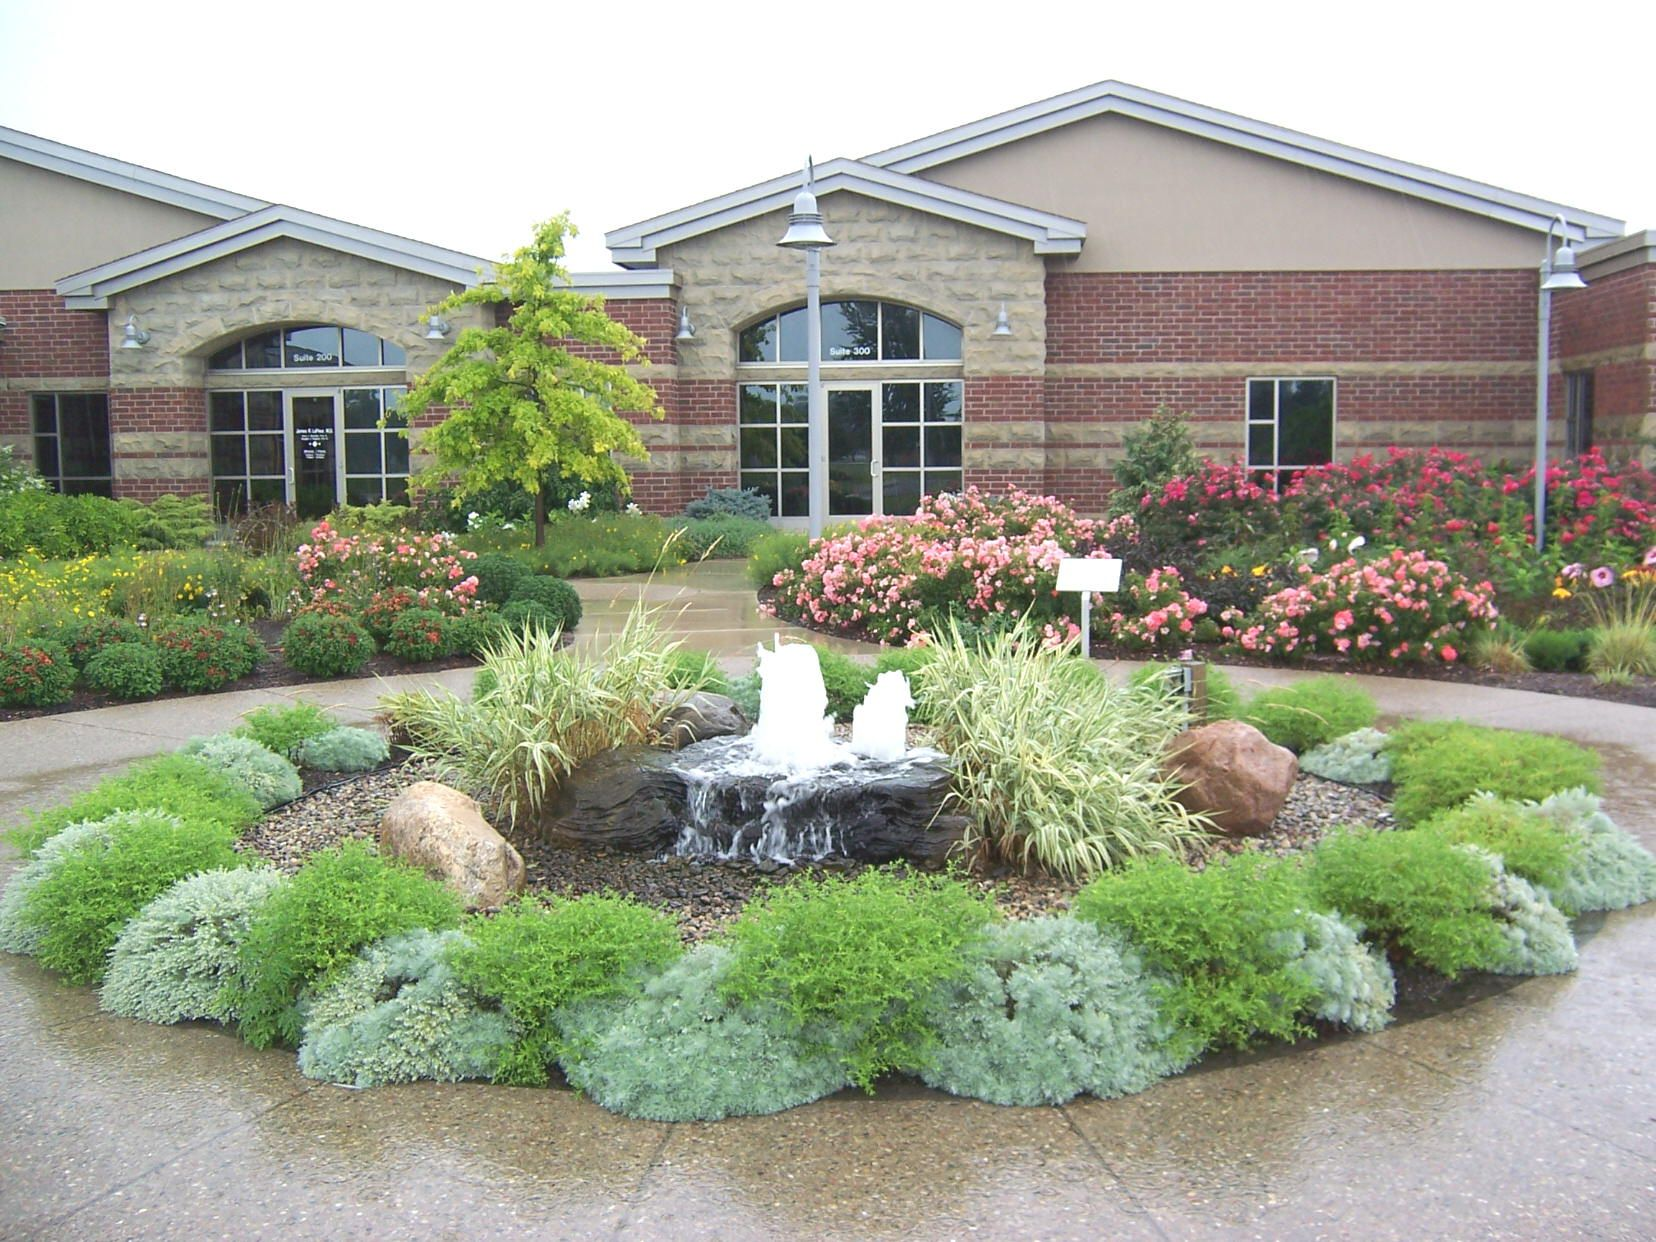 Beautiful Front Yard Landscaping Ideas With Fountains Part - 5: F40268f11a0925076bc67791b2e79a66.jpg